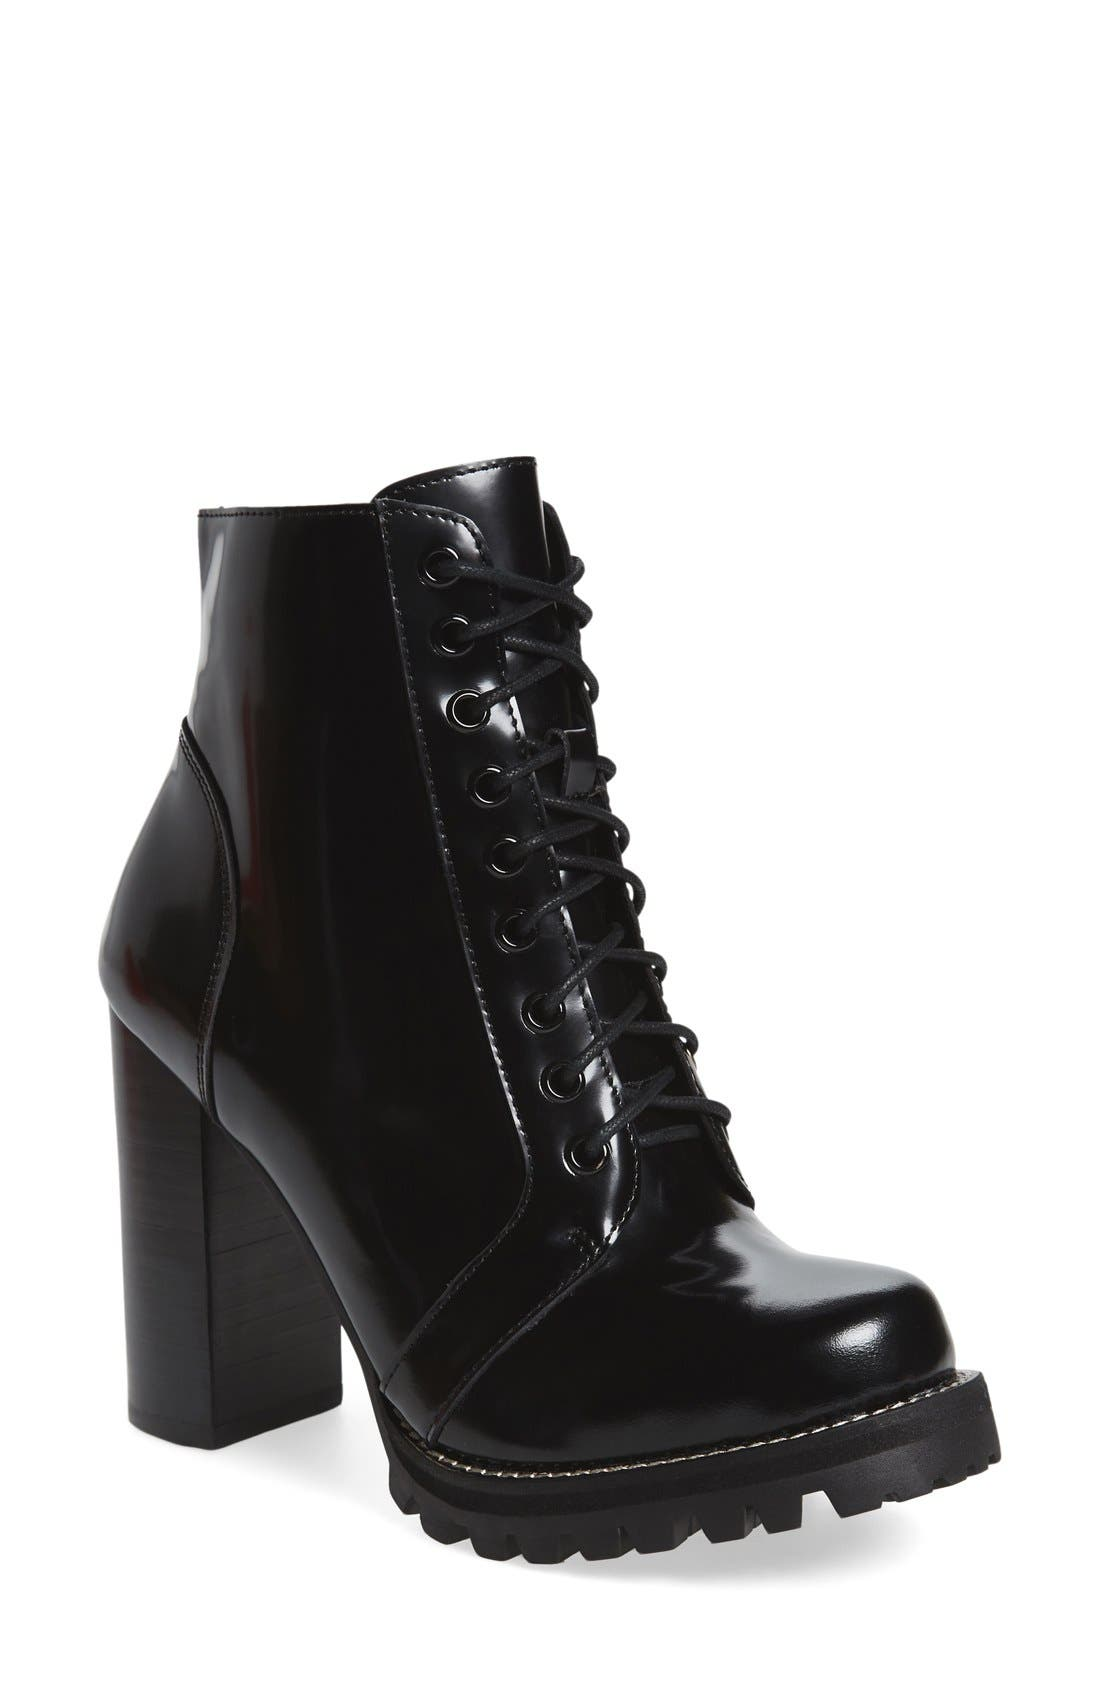 JEFFREY CAMPBELL, 'Legion' High Heel Boot, Main thumbnail 1, color, BLACK BOX LEATHER